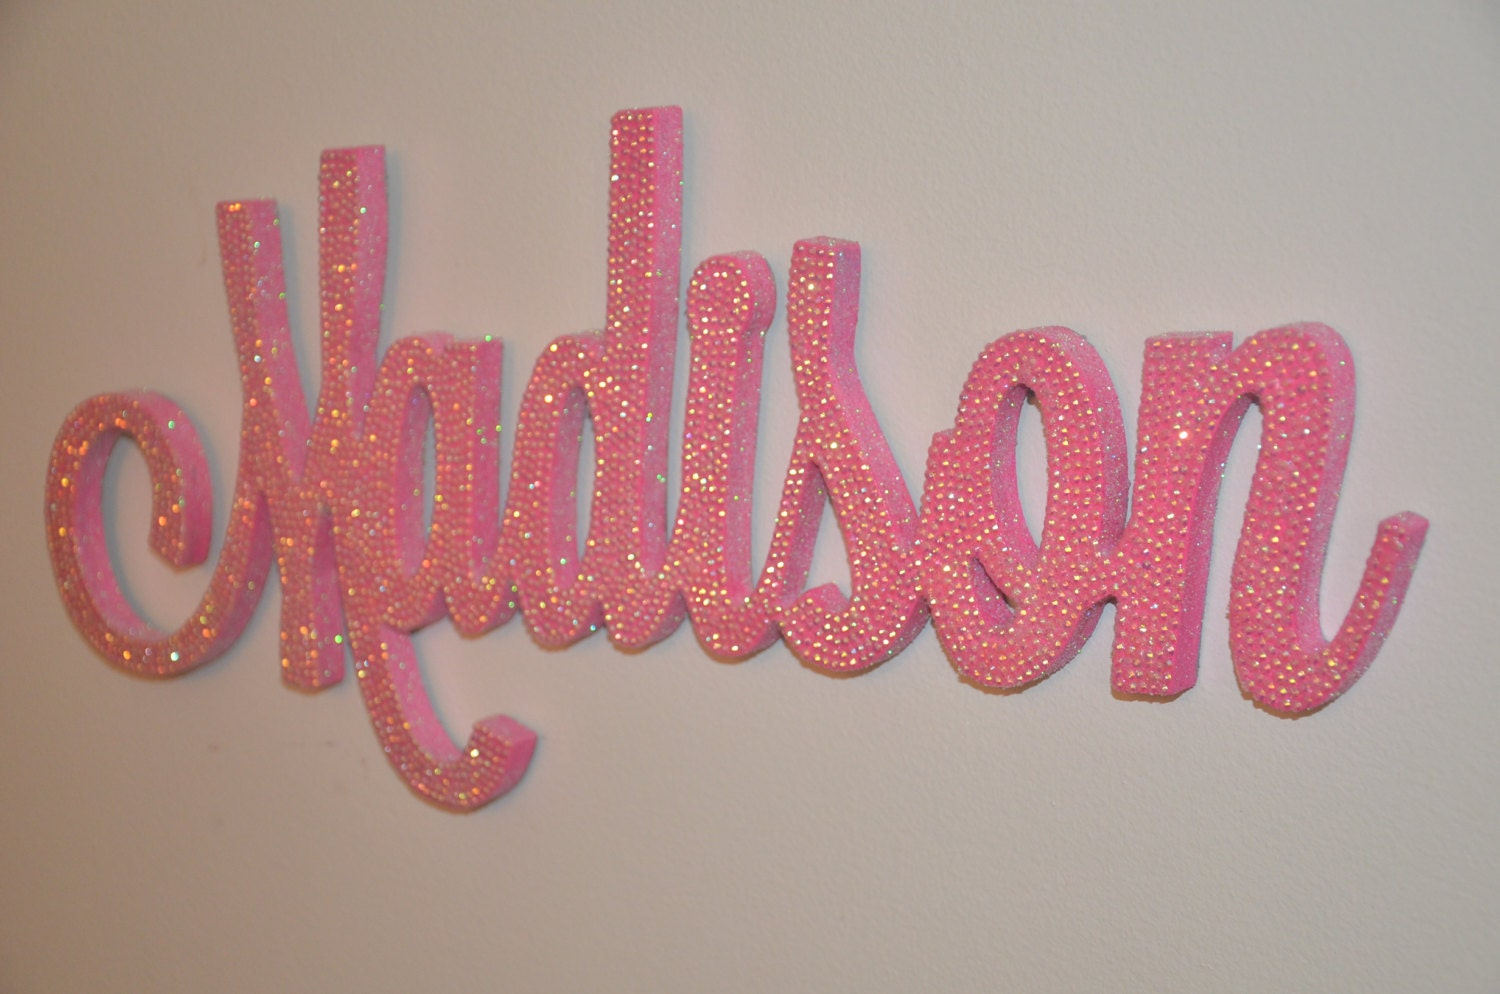 18 inch rhinestone name plaque bling decorative wall letters. Black Bedroom Furniture Sets. Home Design Ideas